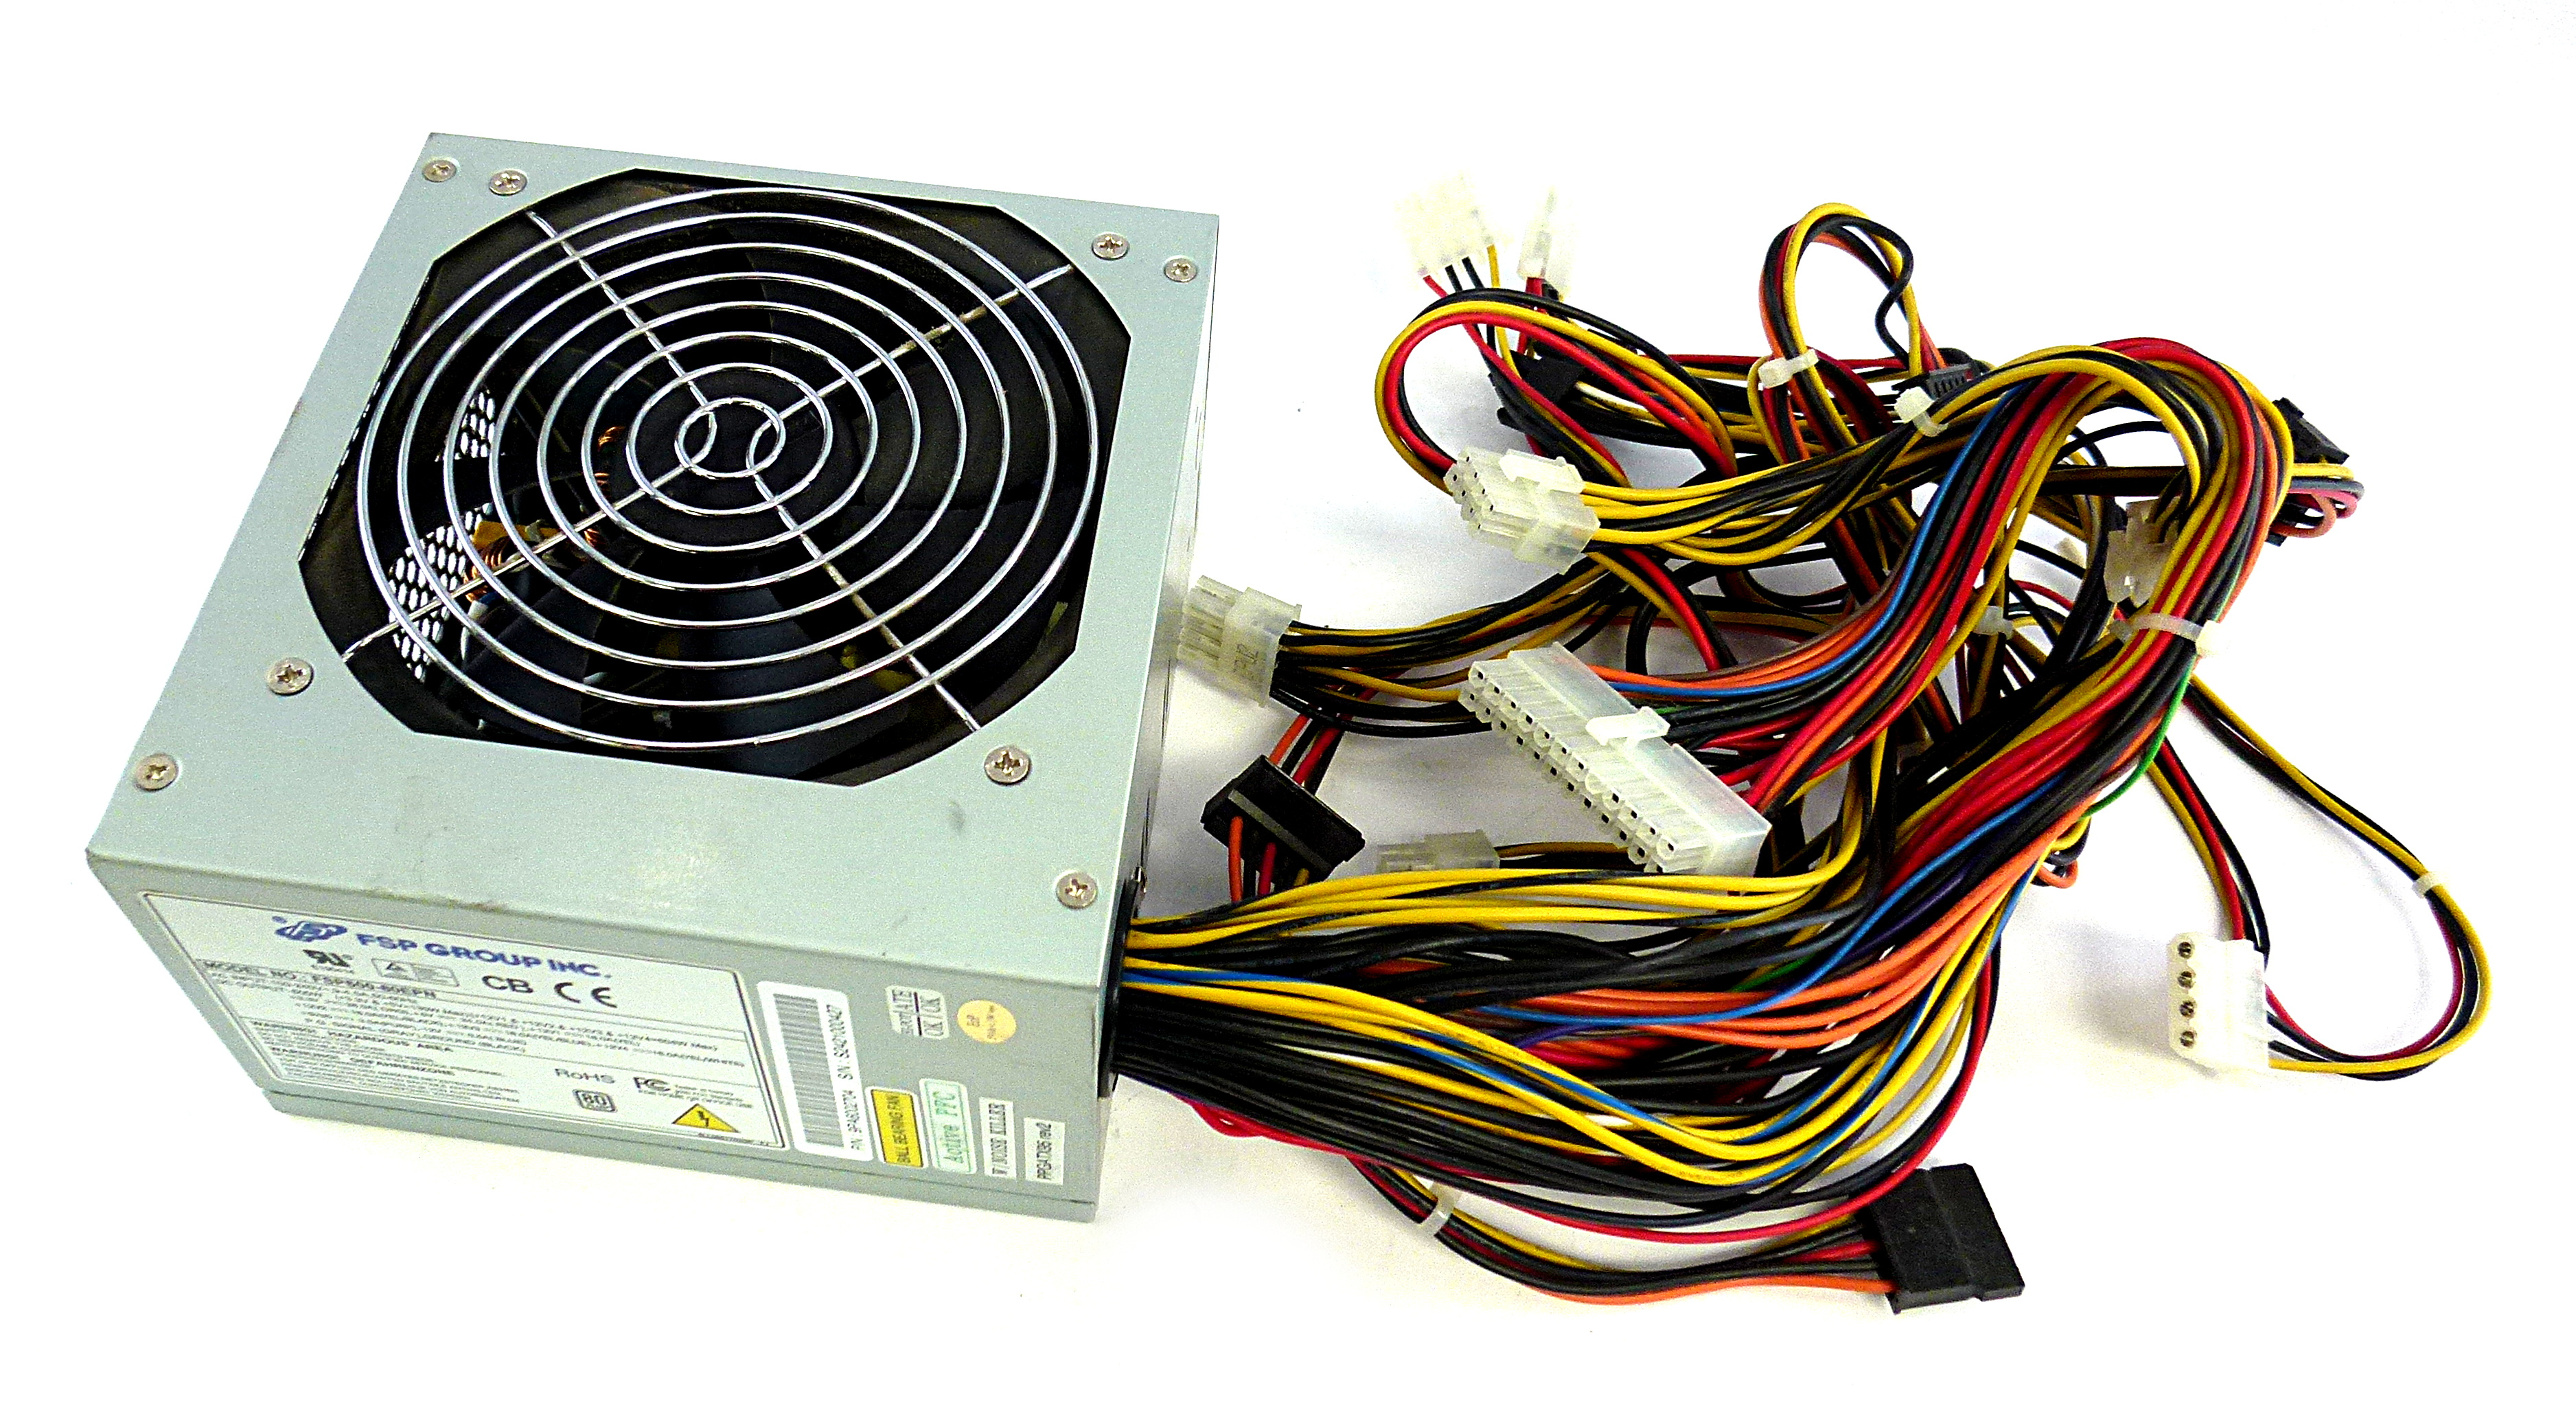 FSP FSP600-80EPN 600W 80 PLUS ATX Power Supply 9PA6002704